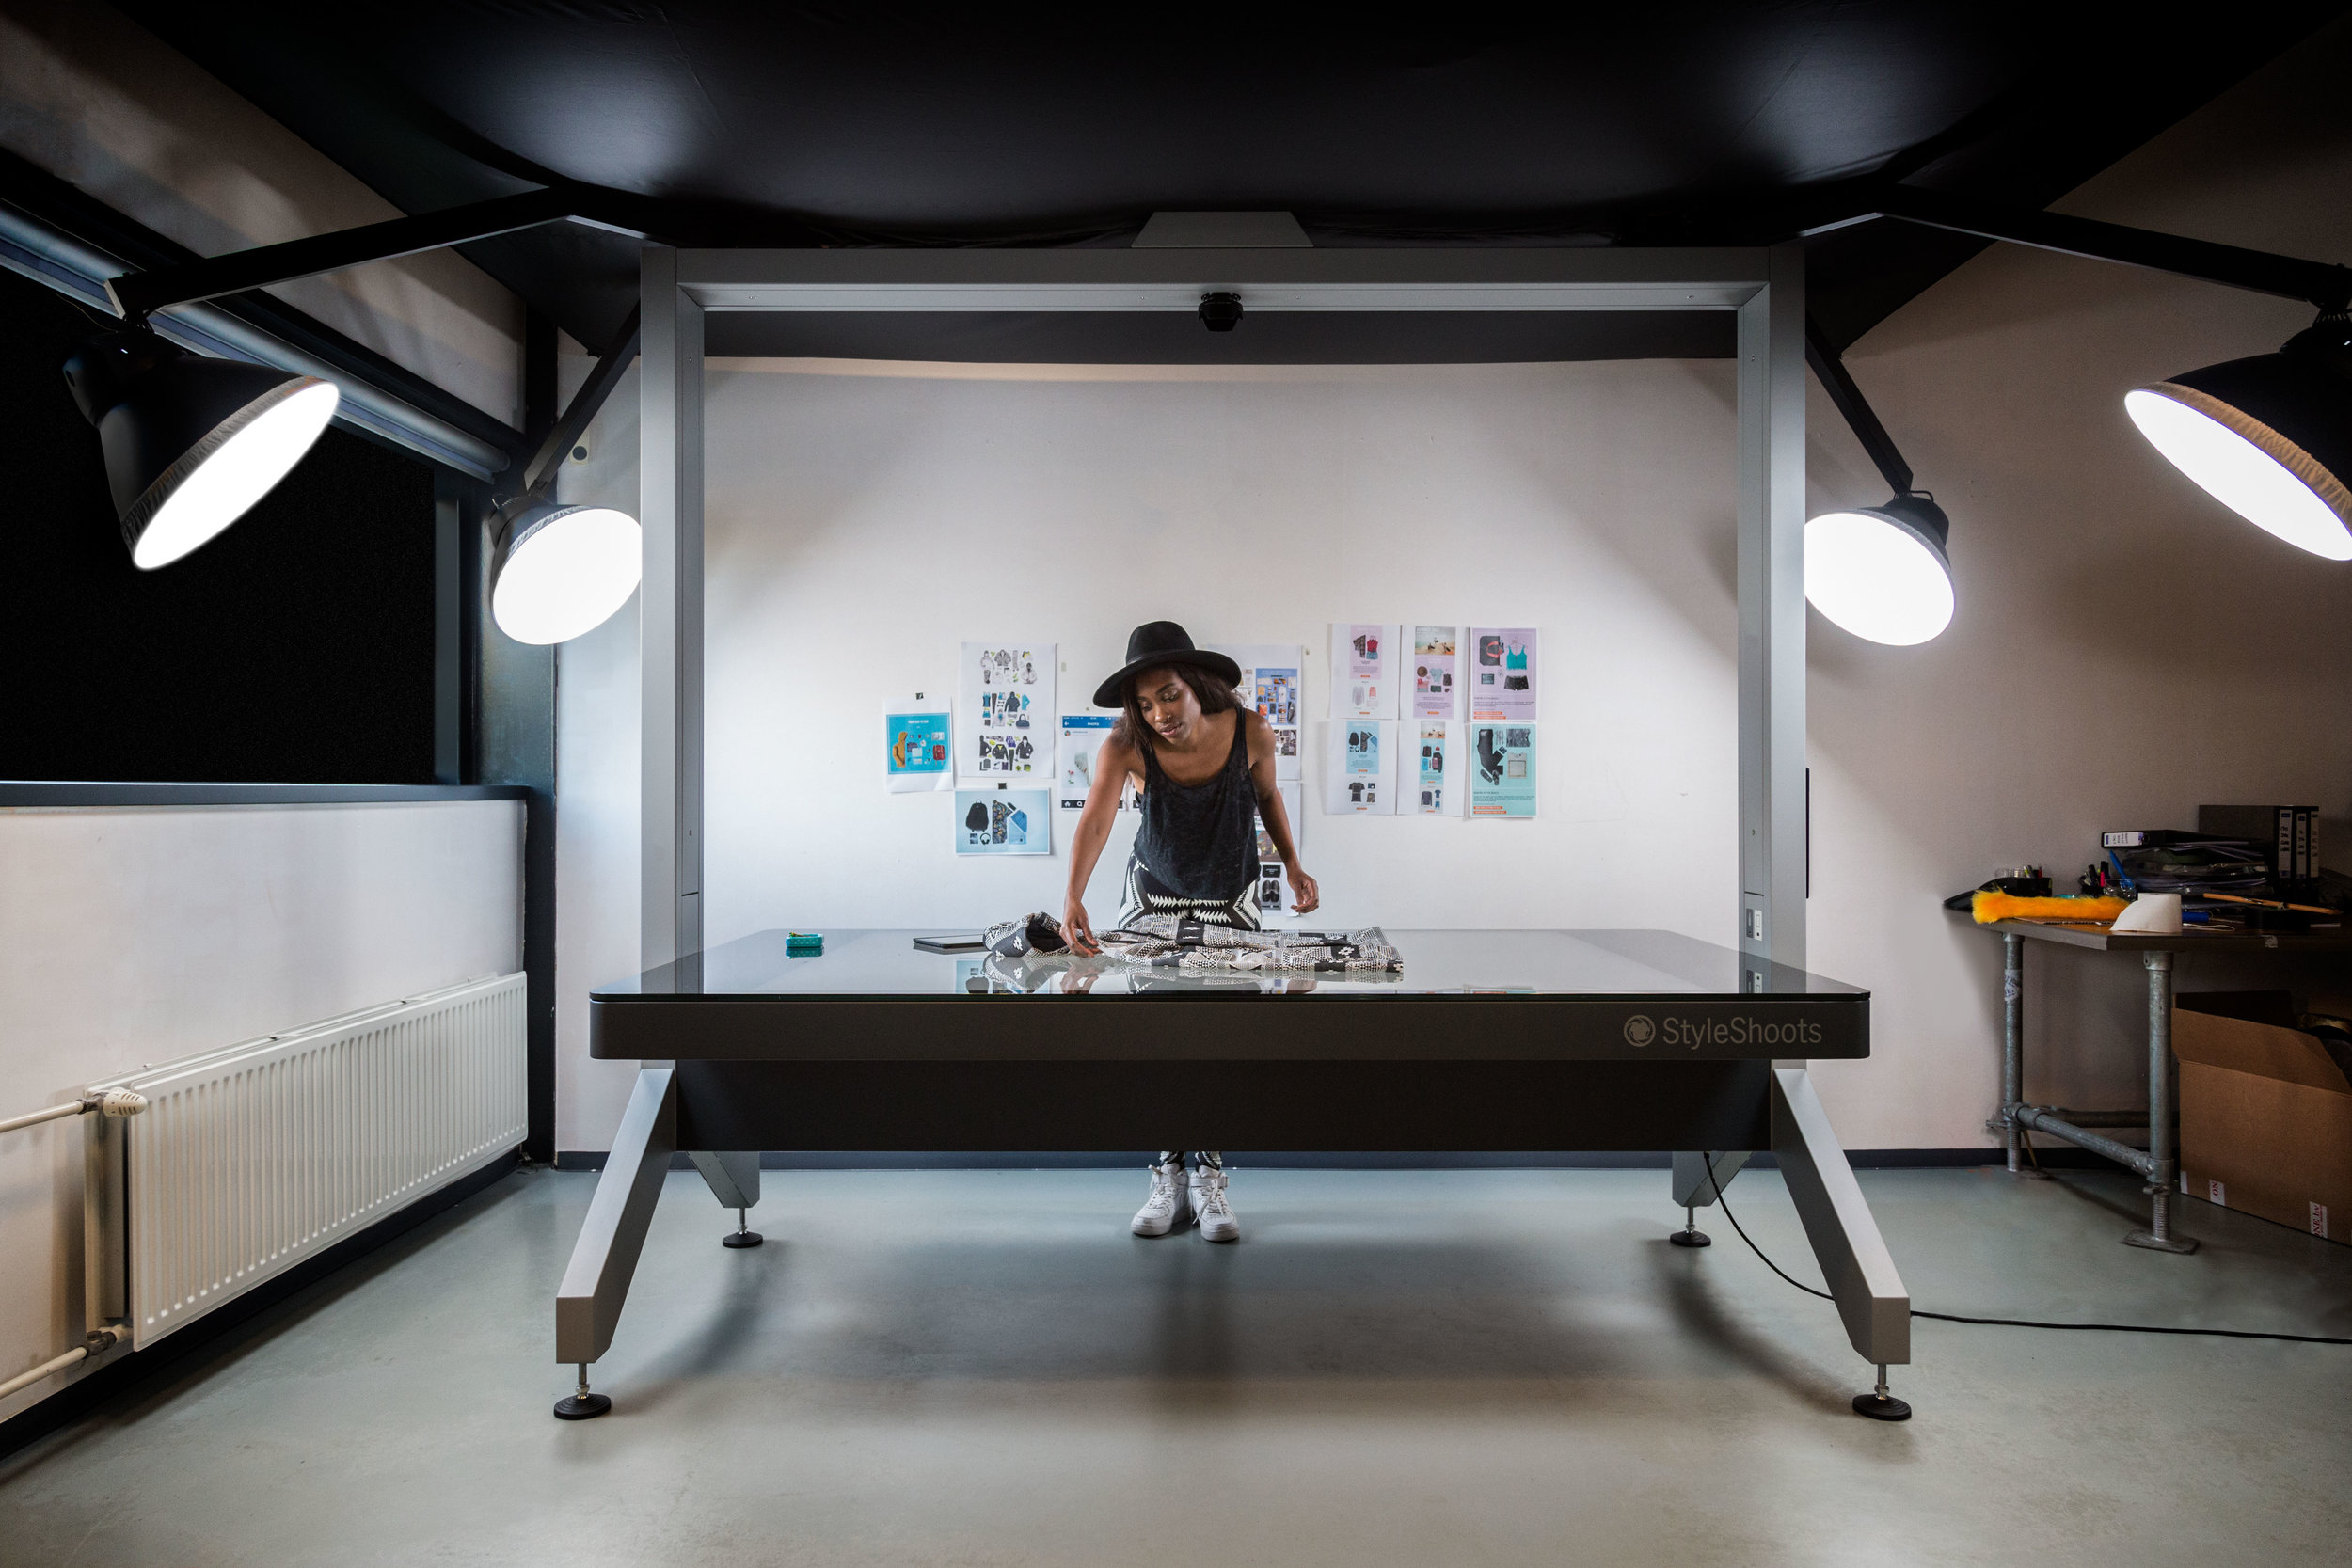 Safrien's busy studio holds both a StyleShoots Horizontal and Vertical machine to allow her complete creative freedom over her product photography.